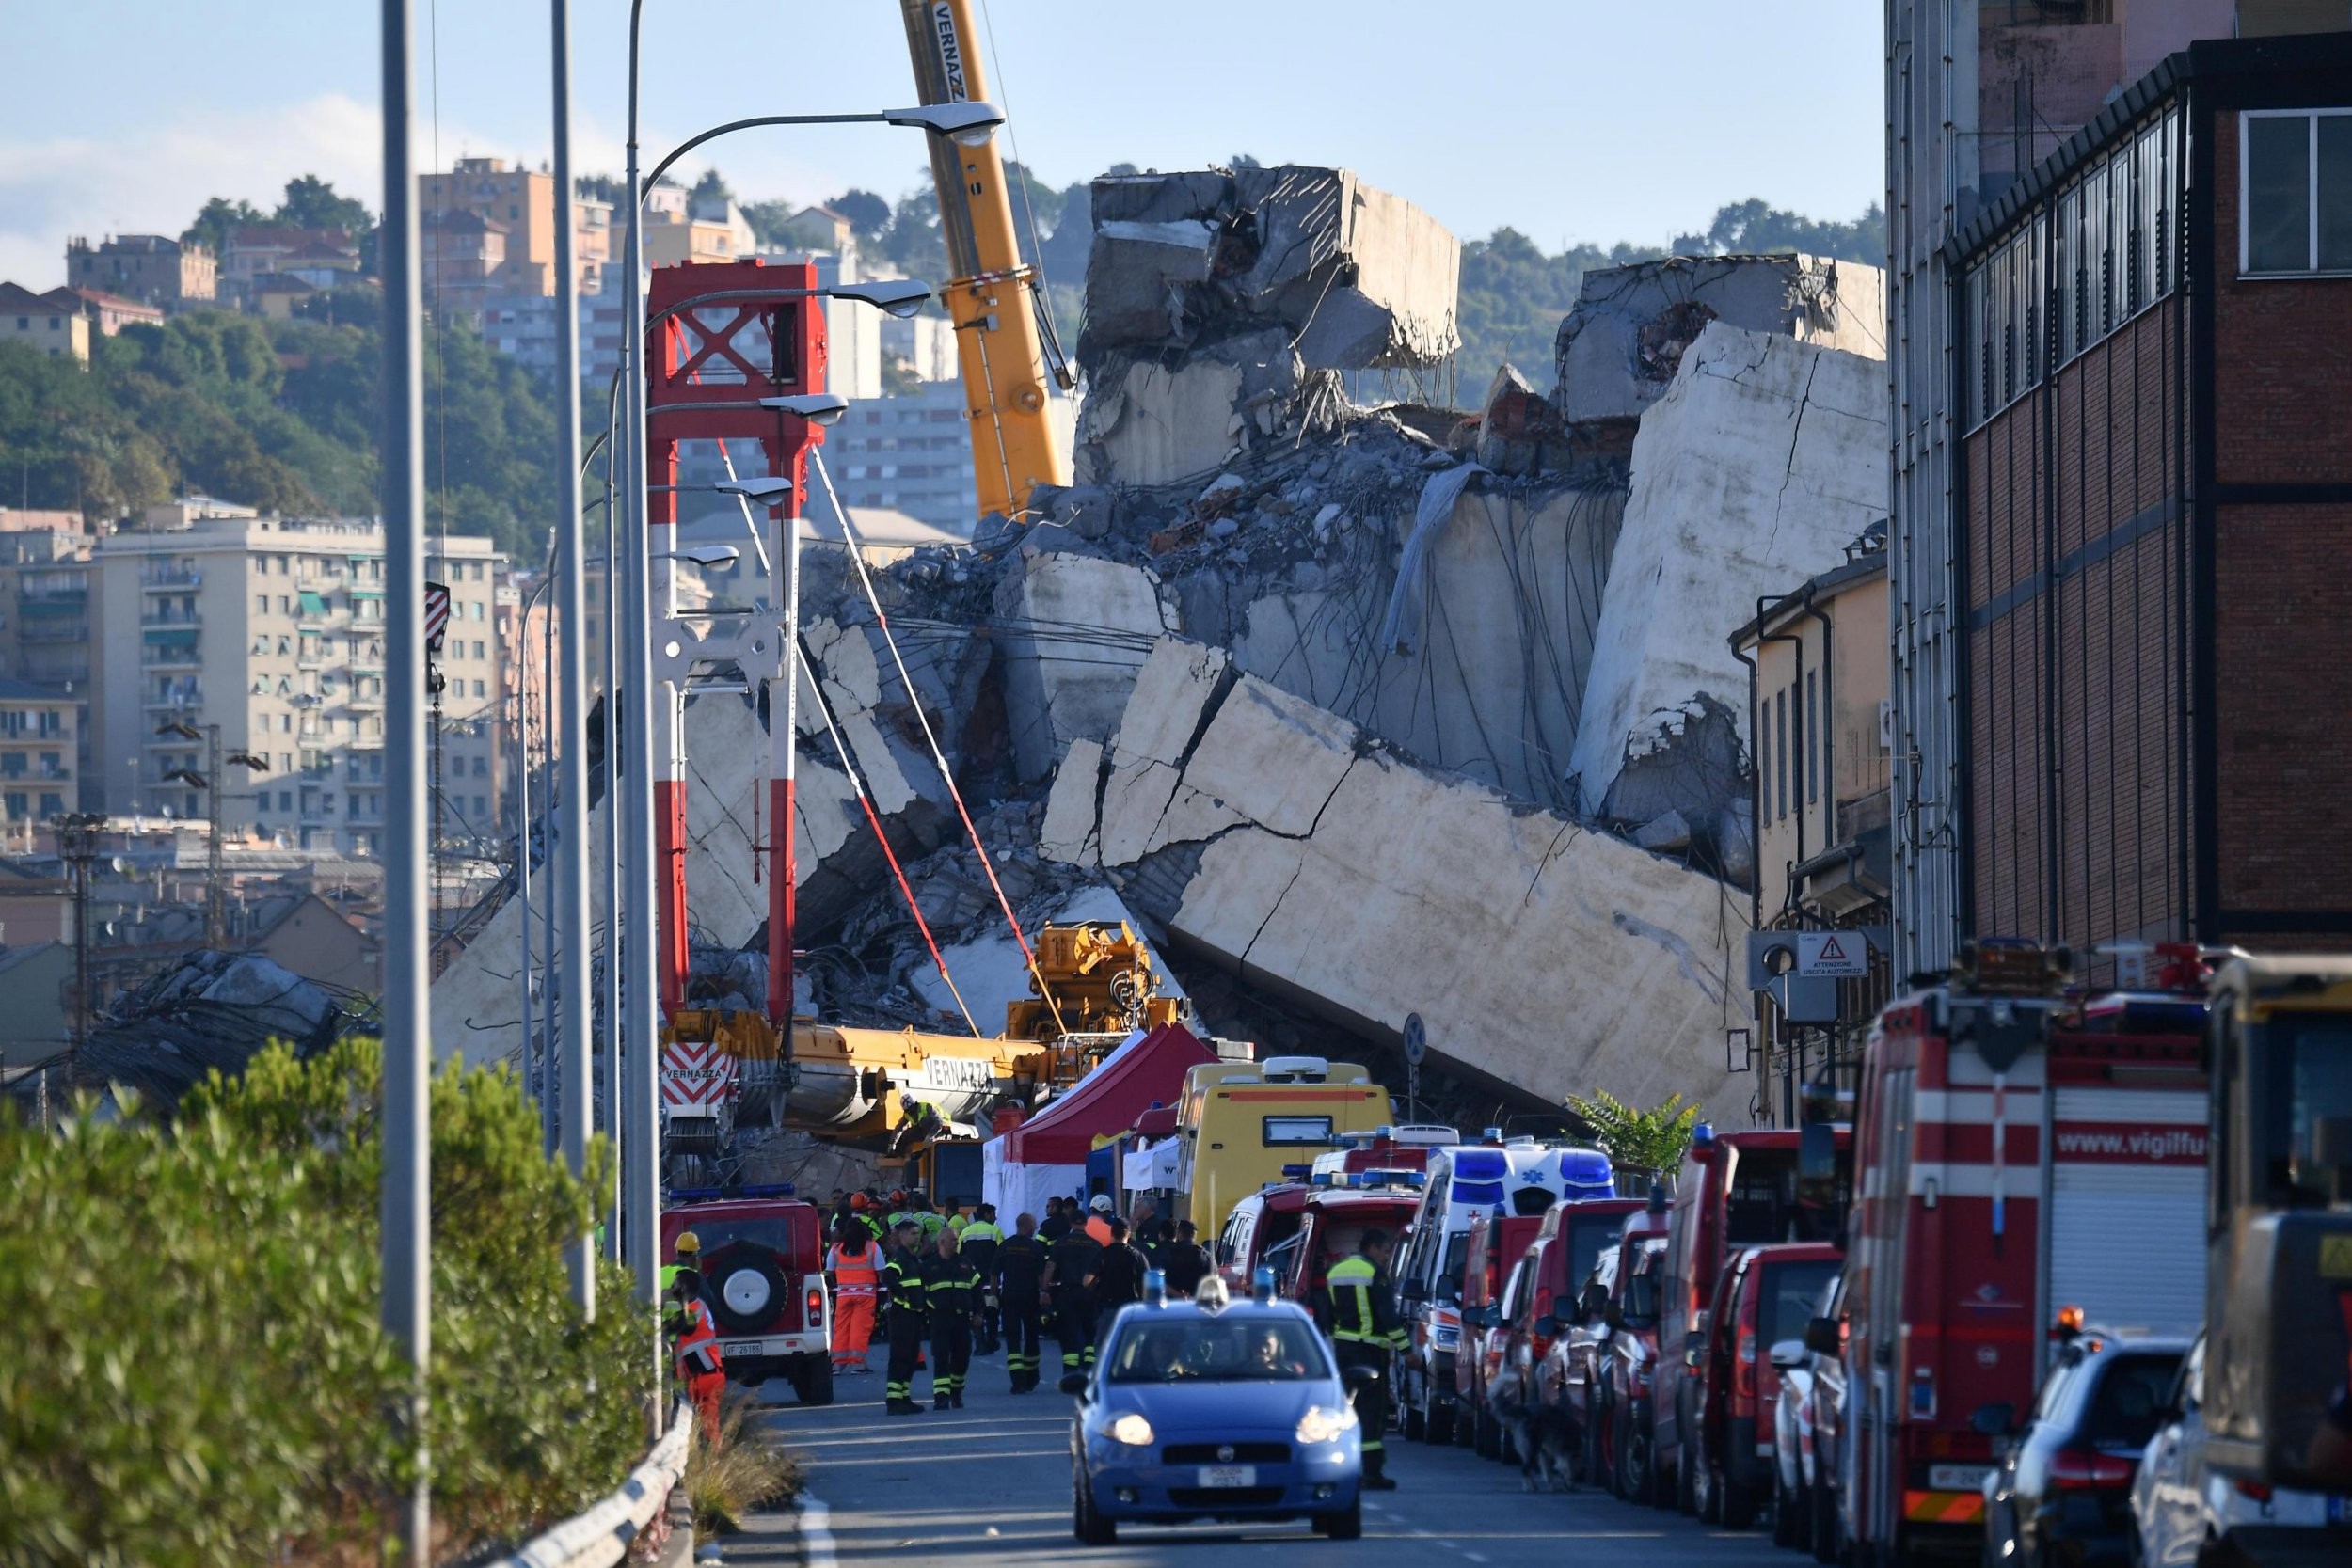 Italy declares year-long state of emergency after bridge disaster